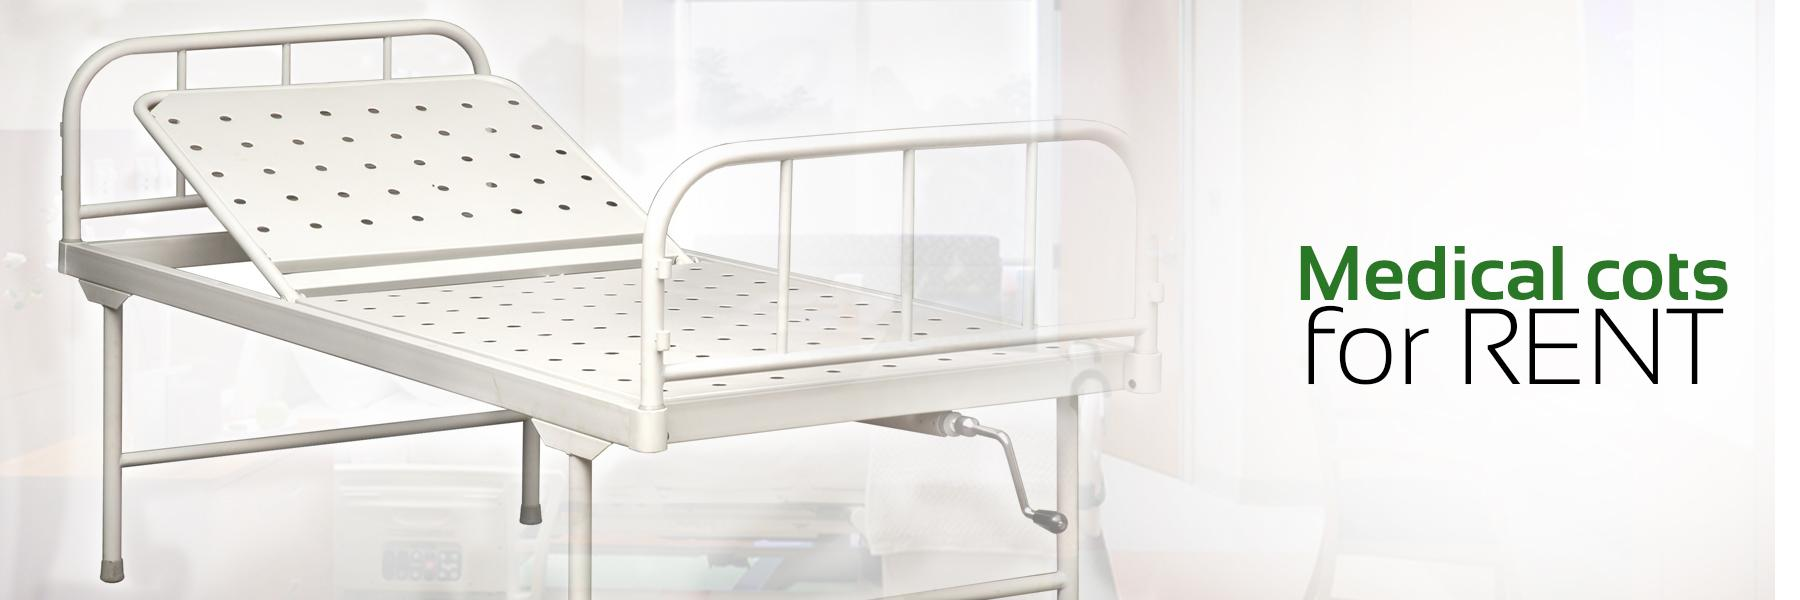 Medical Cots & Hospital Beds on Rent